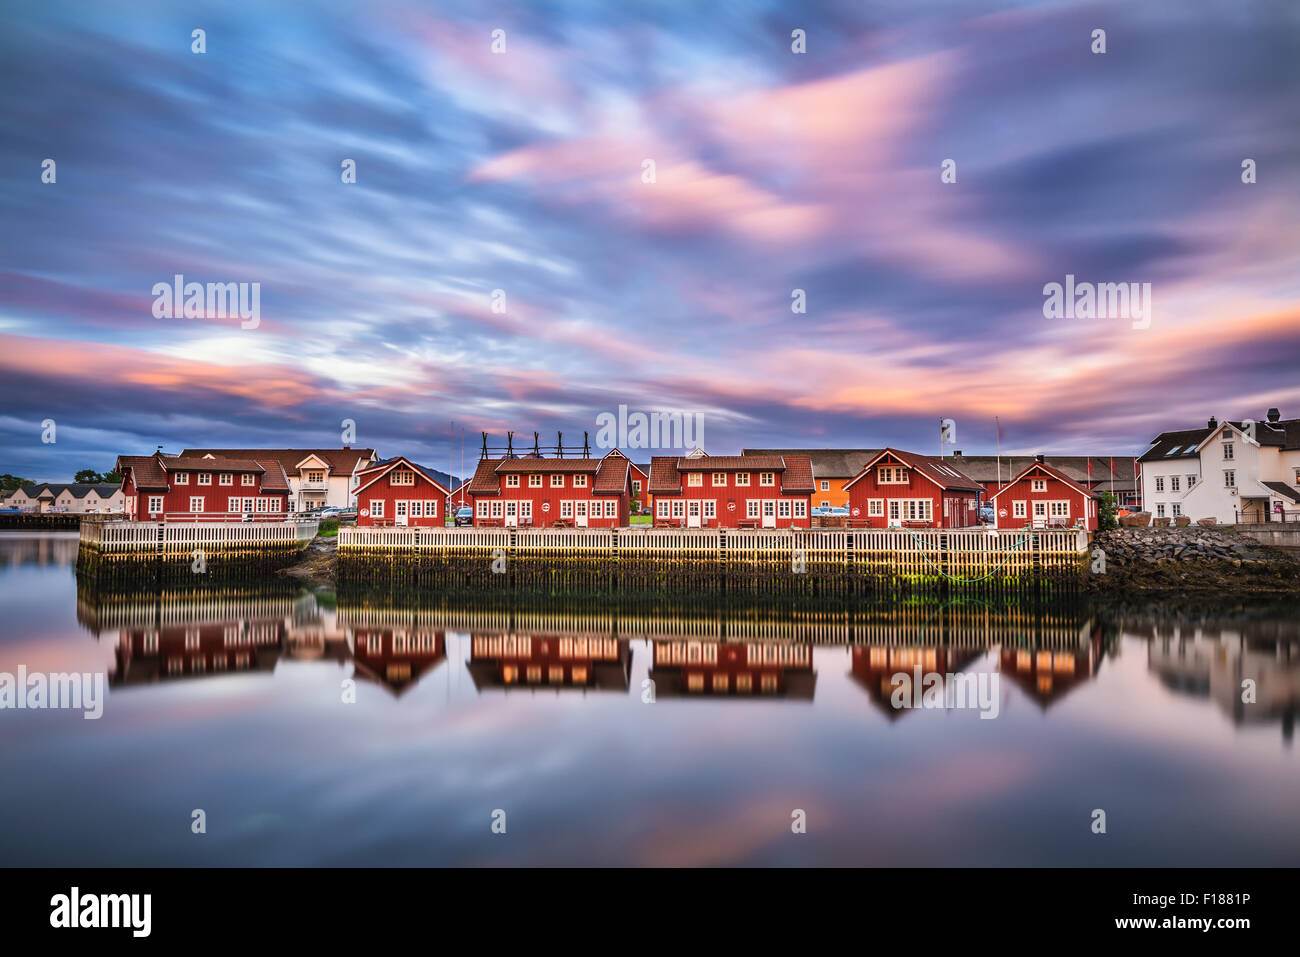 Sunset over harbor houses in Svolvaer. Svolvaer is located  in Nordland County on the island of Austvagoya in Lofoten, - Stock Image